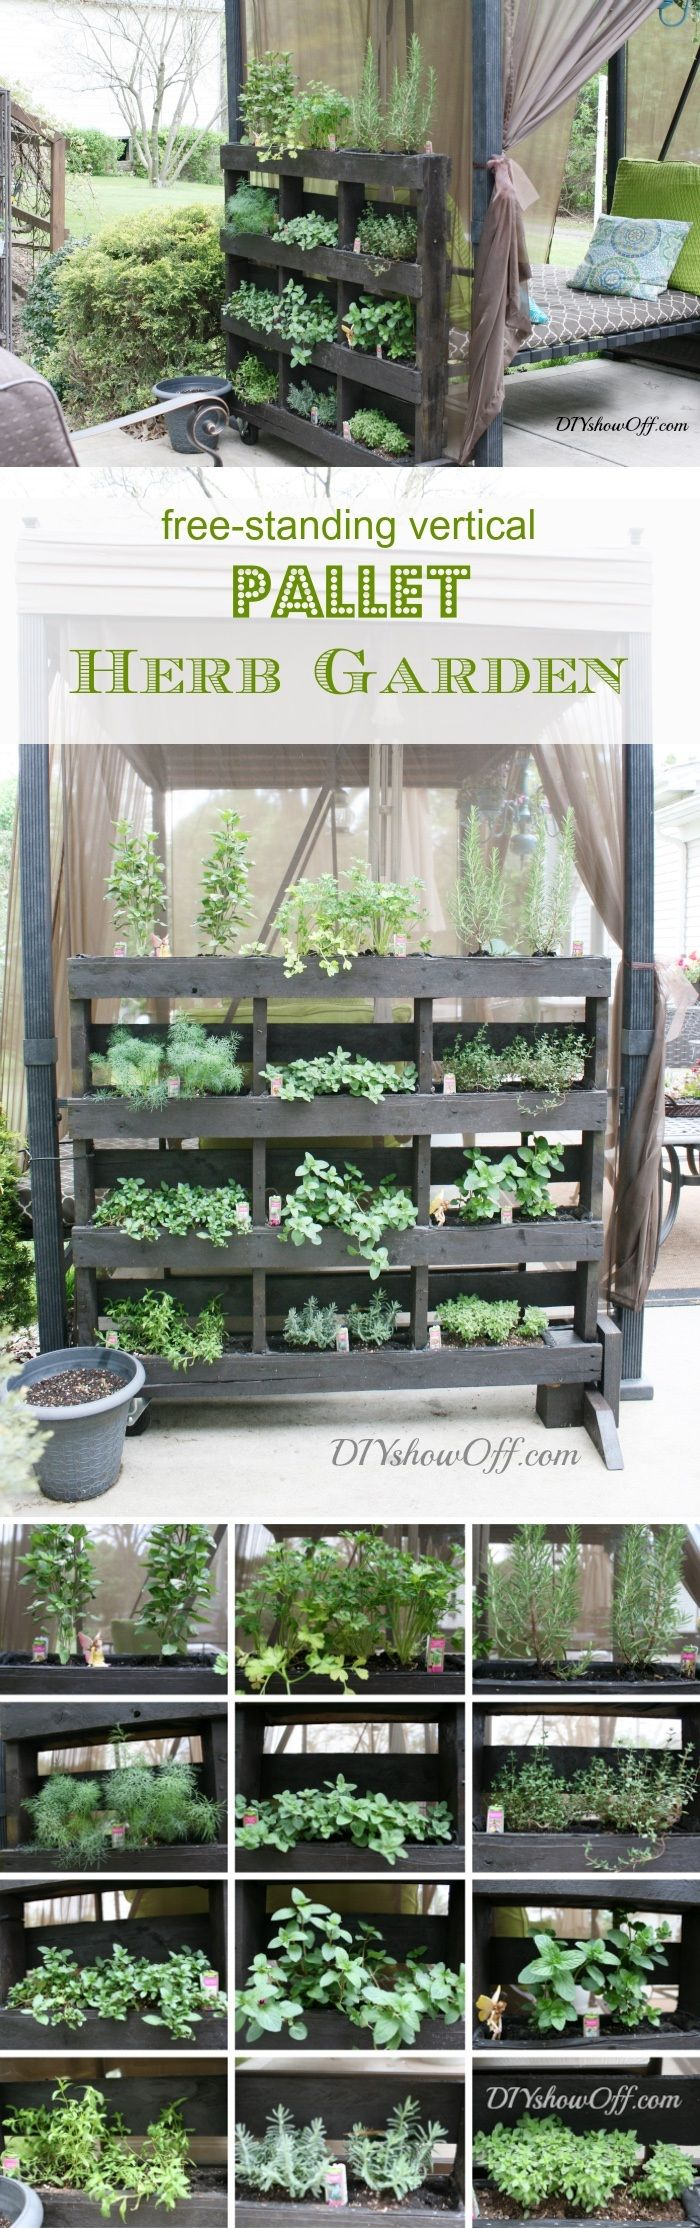 best 25+ diy herb garden ideas on pinterest | indoor herbs, herb